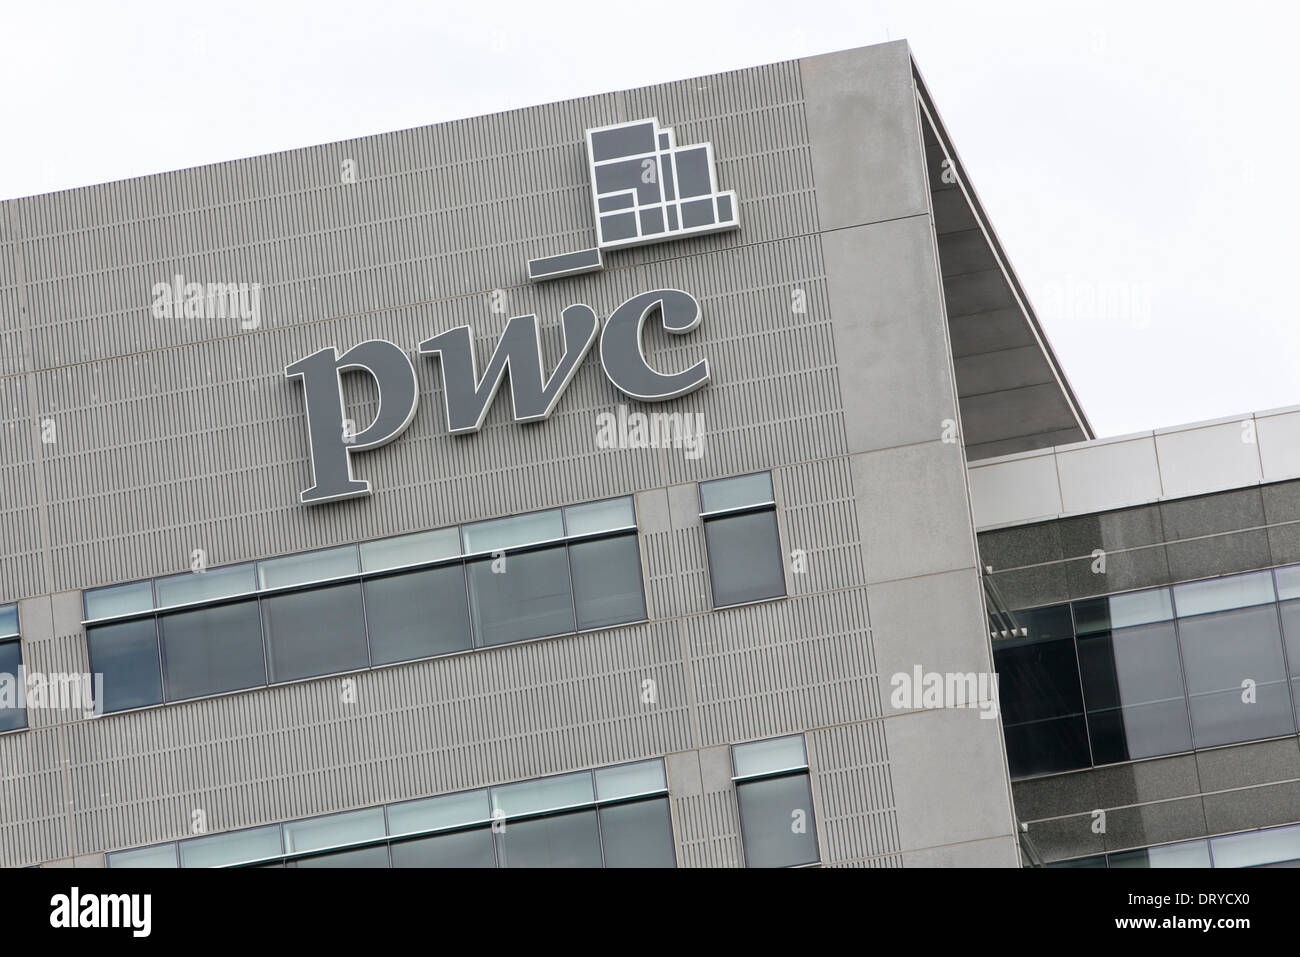 An office building occupied by PricewaterhouseCoopers in Tysons Corner, Virginia.  - Stock Image